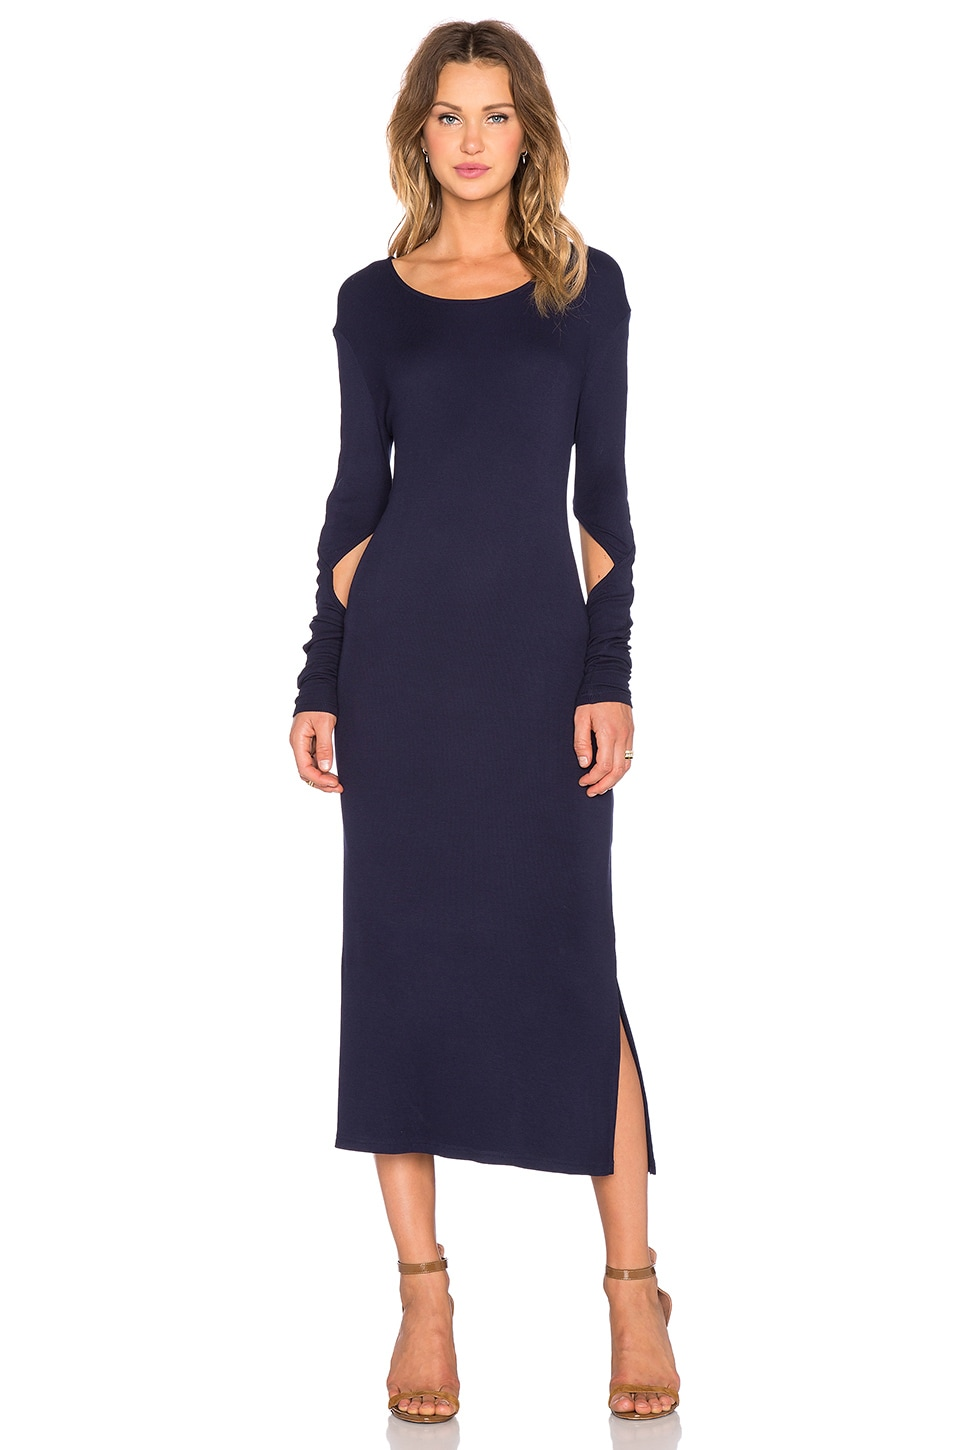 State Of Being Fine Rib Long Sleeve Dress In Navy Revolve Long sleeve dresses for anything and everything. revolve